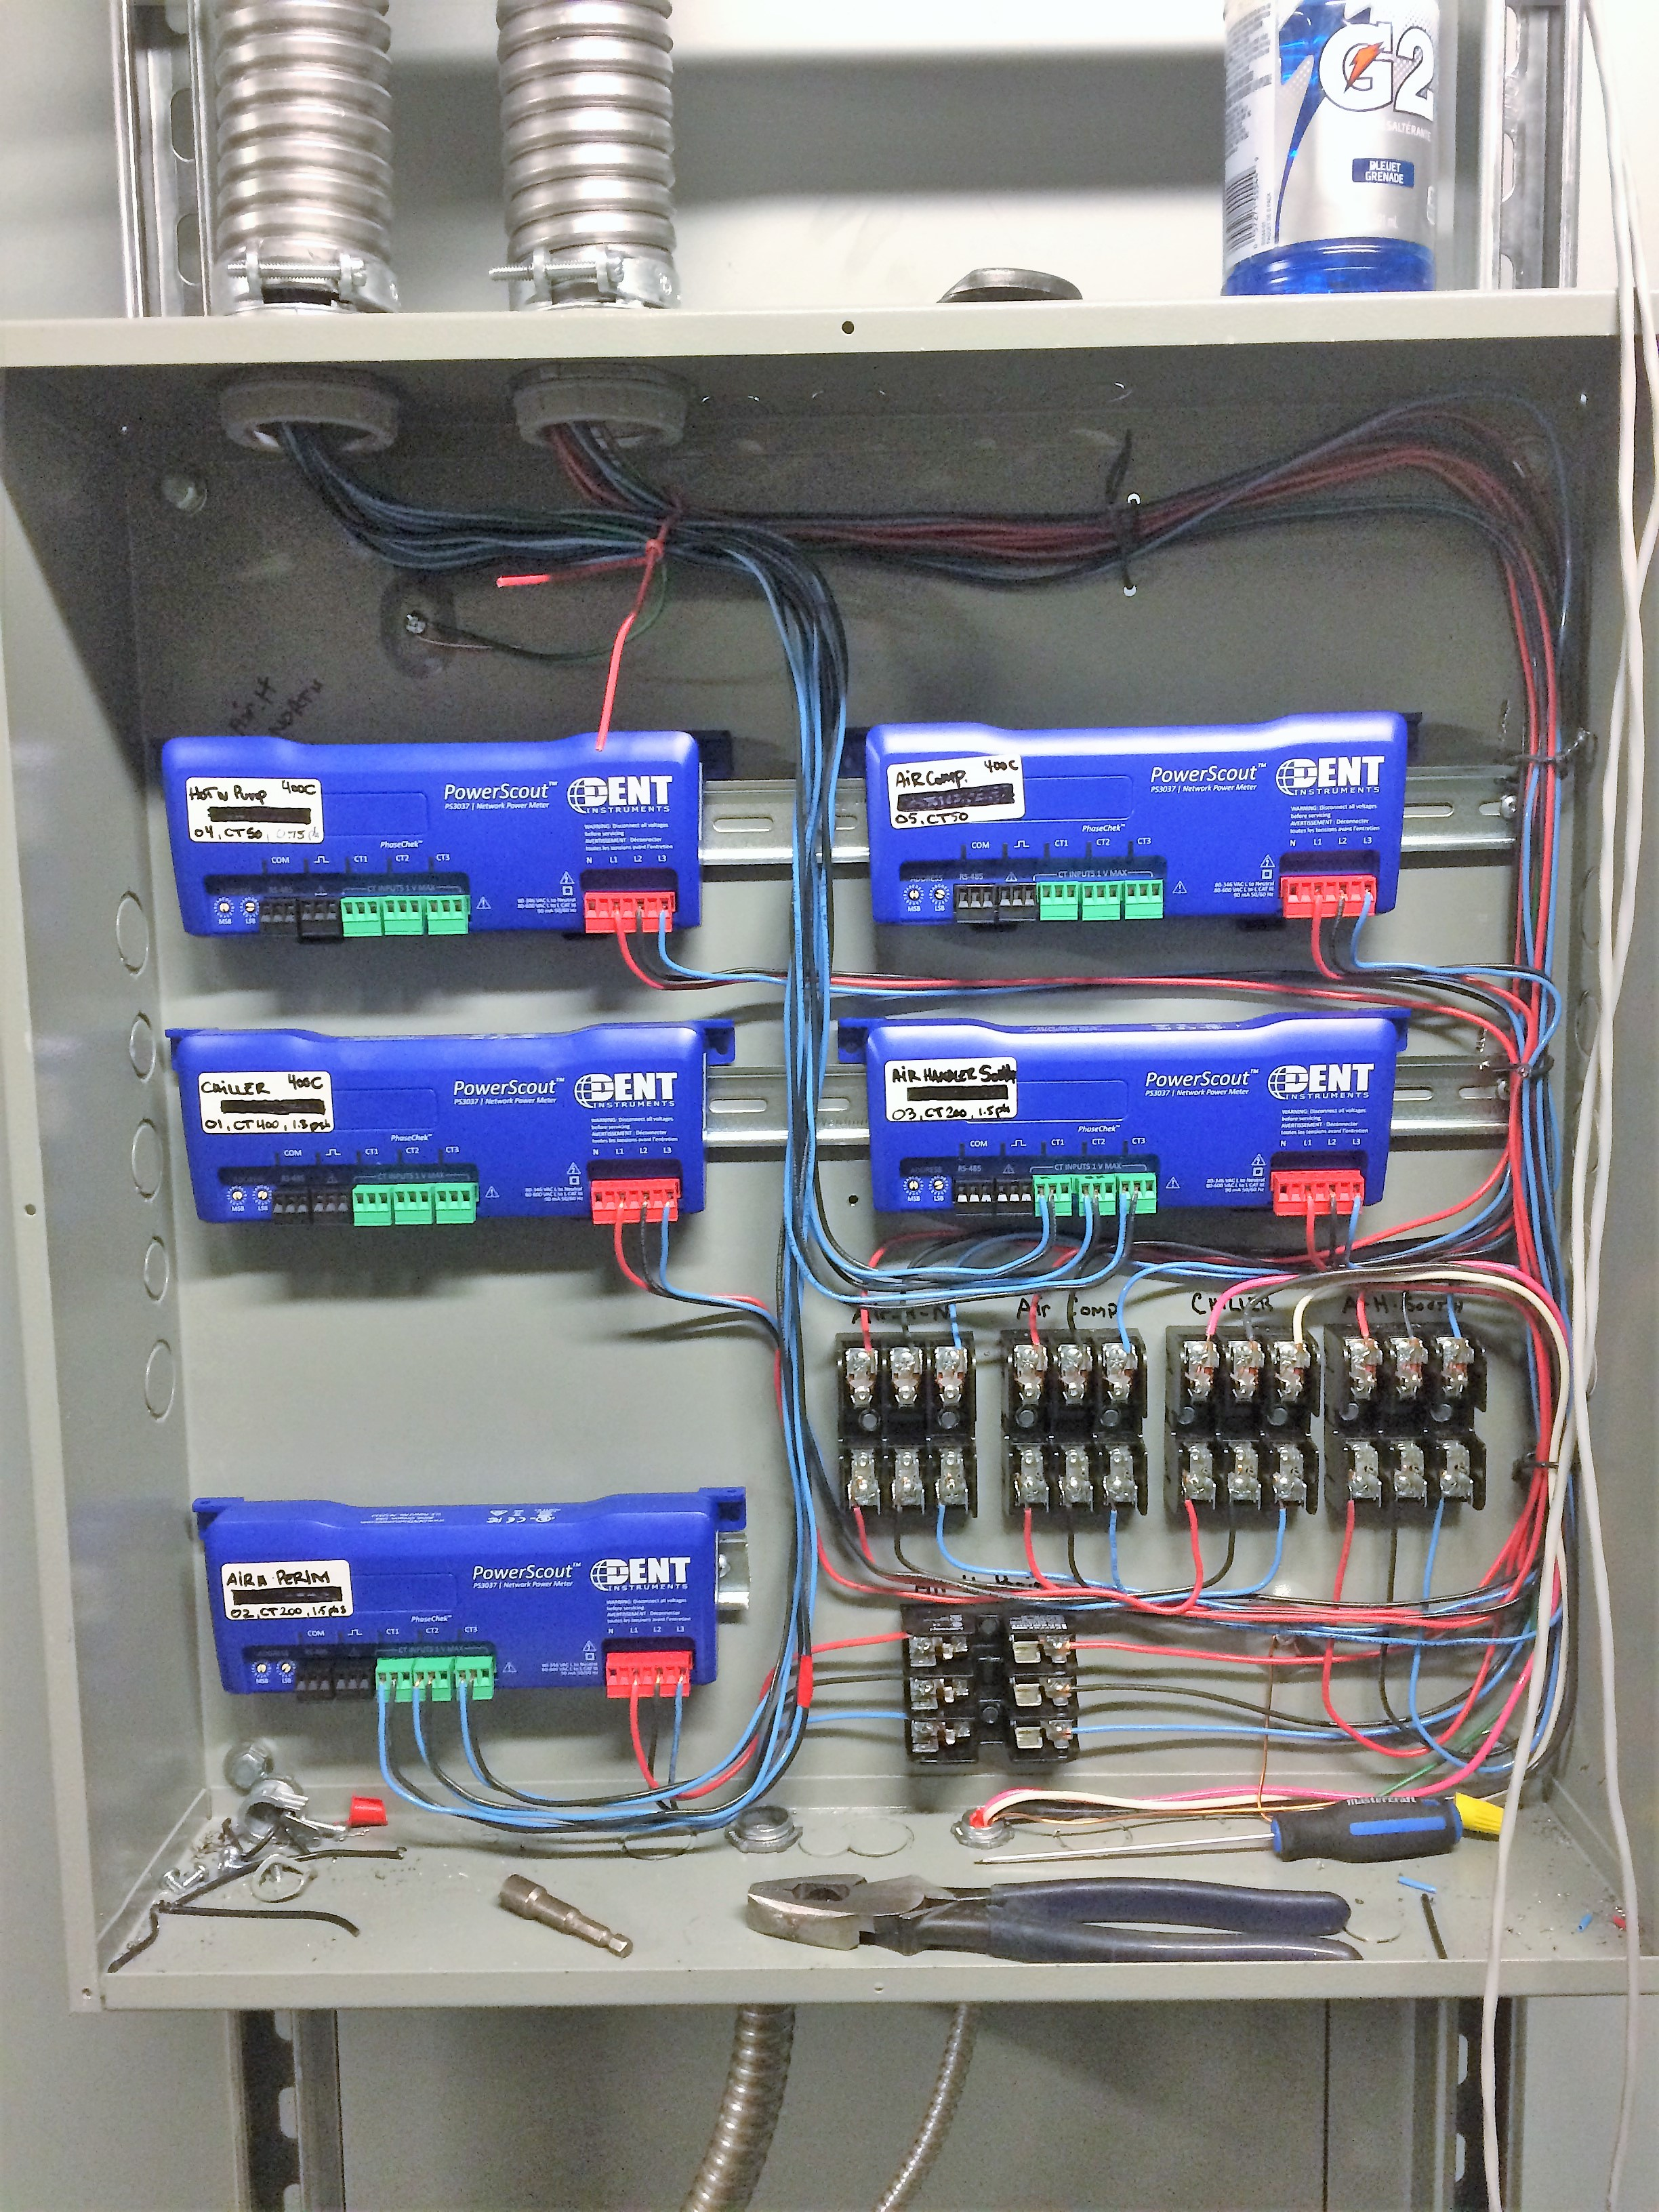 Energy Savings Metering system for High rise building - In progress